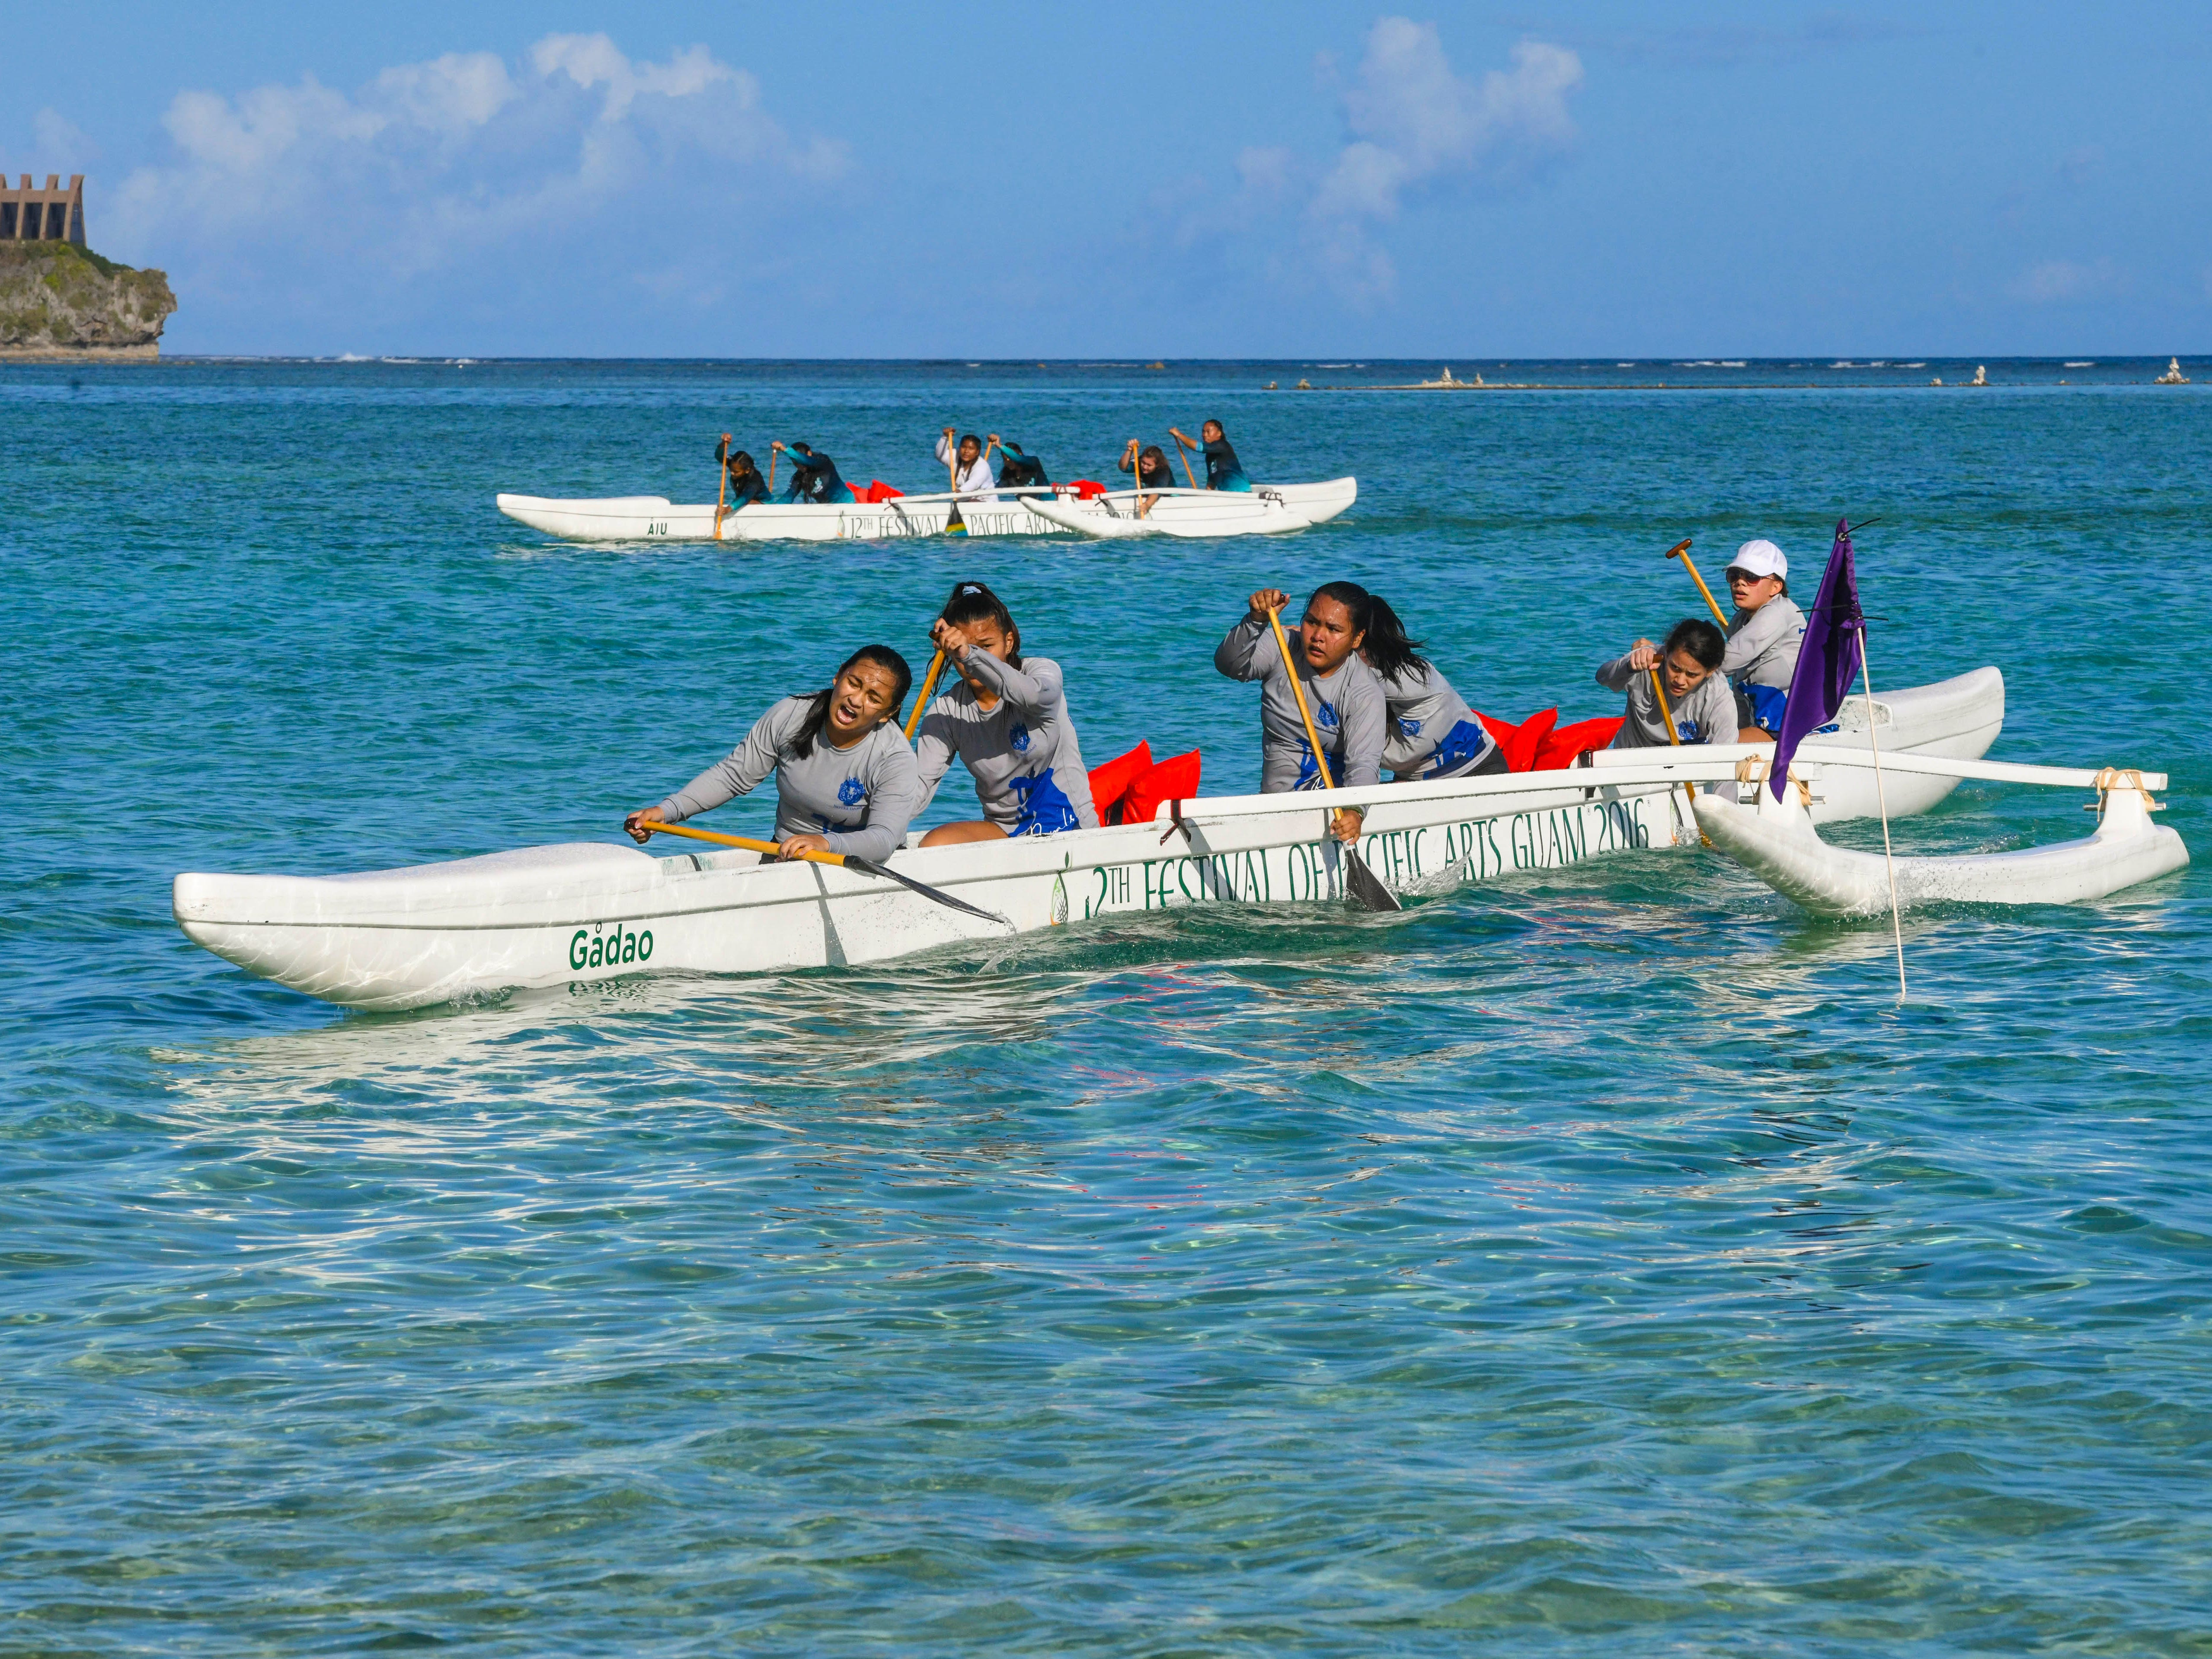 Paddlers from Notre Dame School glide pass the finish line after completing a race against other teams in an IIAAG Paddling competition preliminary race held at Matapang Beach in Tumon on Saturday, May 11, 2019.